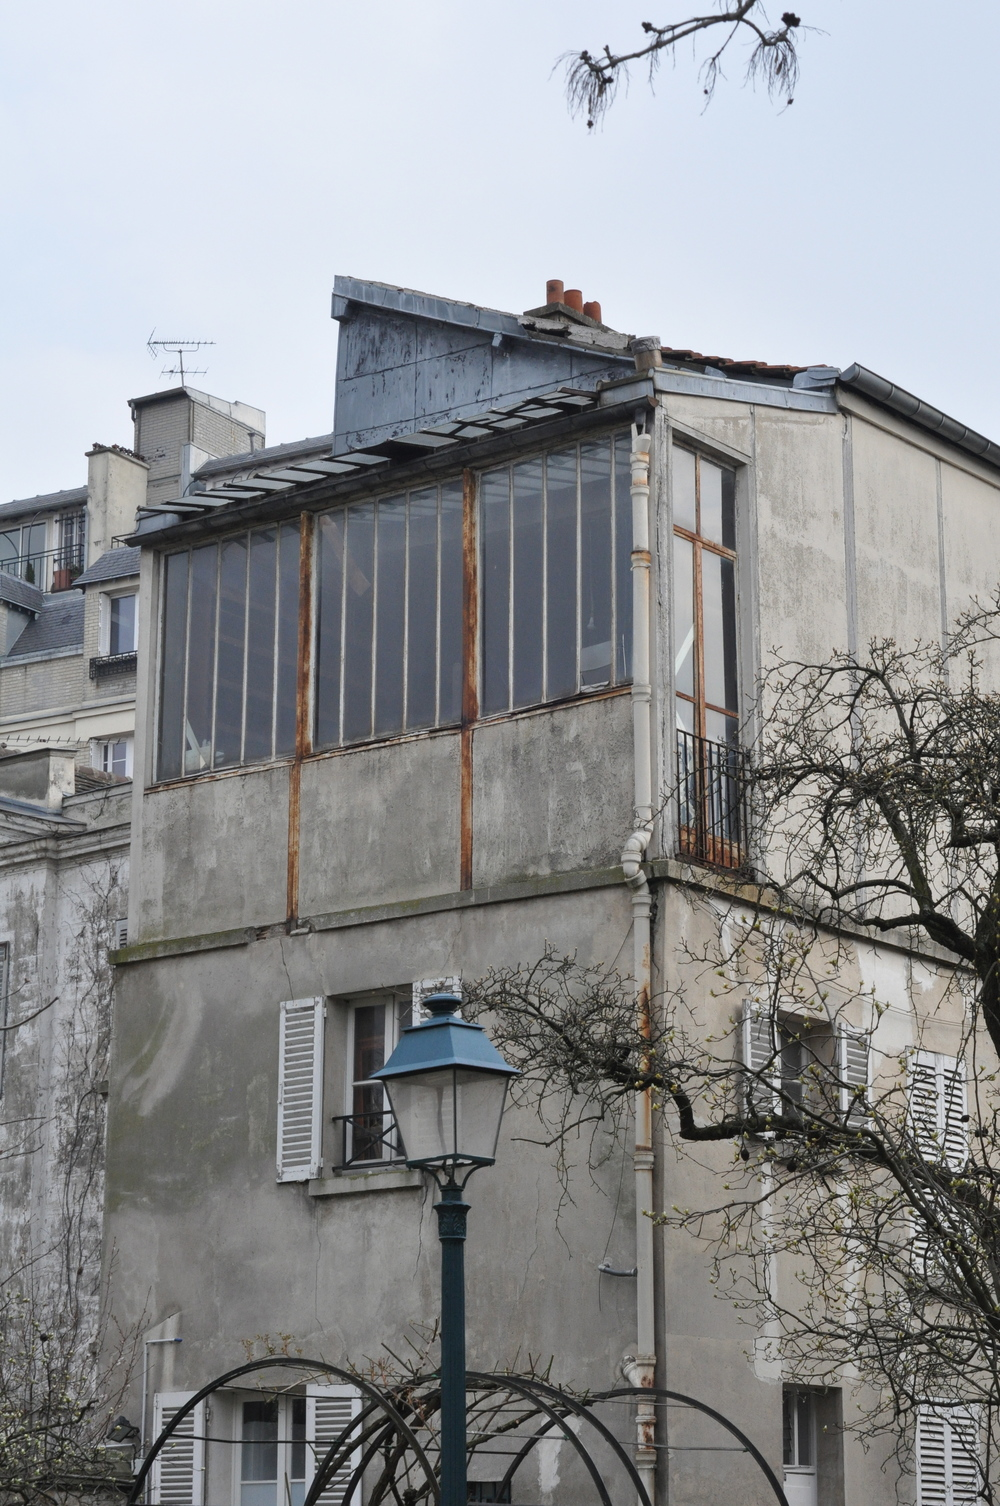 artist studios at montmartre musee